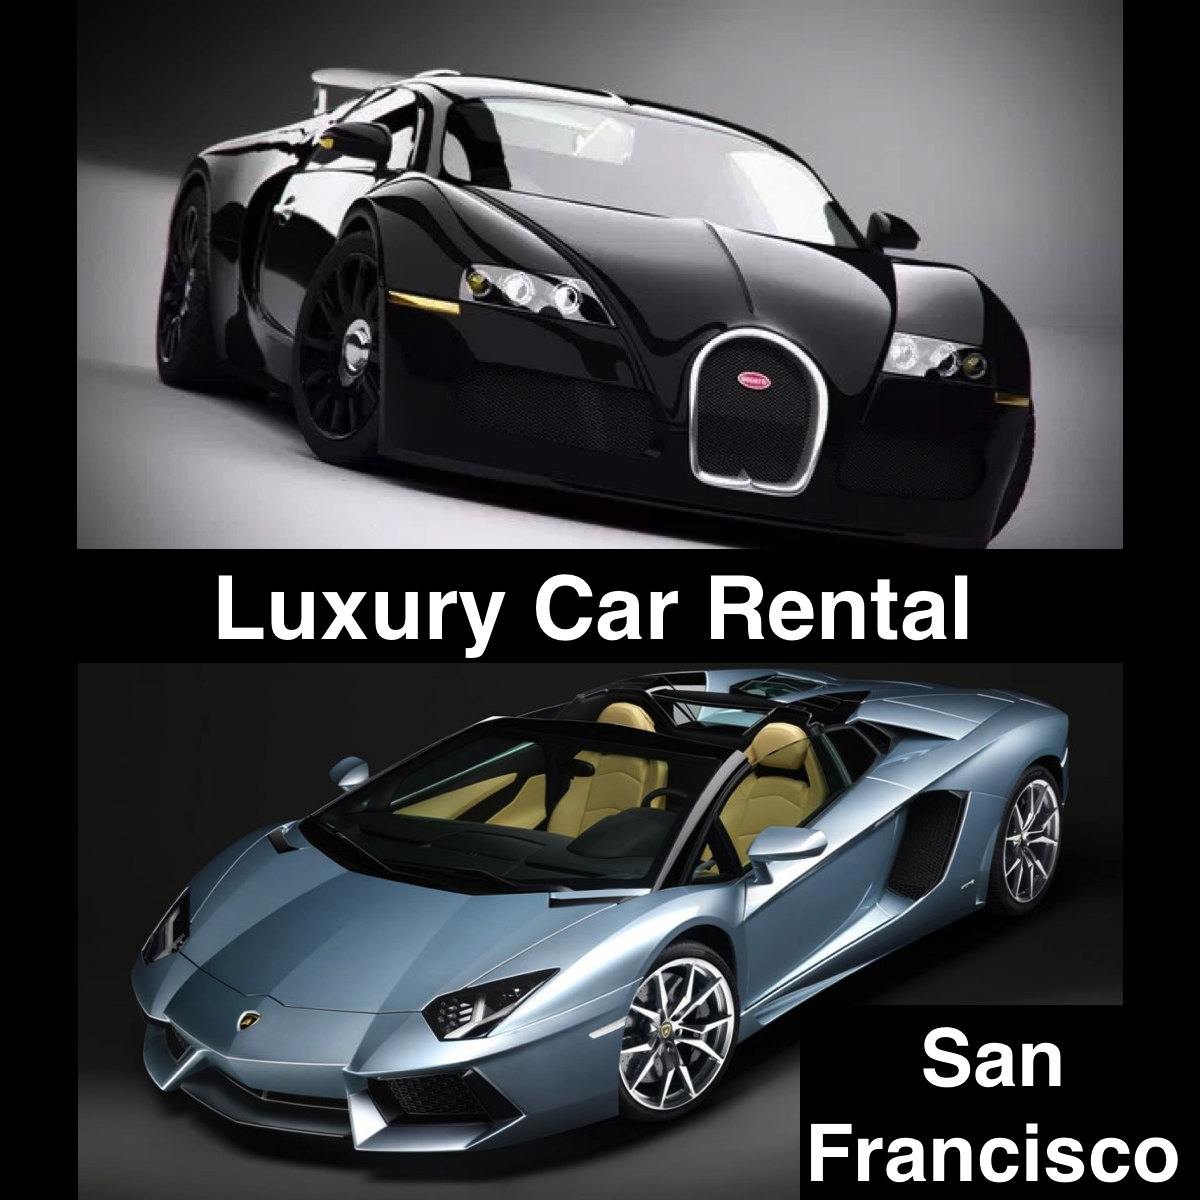 emerald s in you fleet from lamborghini well as mg art sports rent the car san airport could rentals td club renting rental an cars francisco handful of back exotic a de unrestored at national